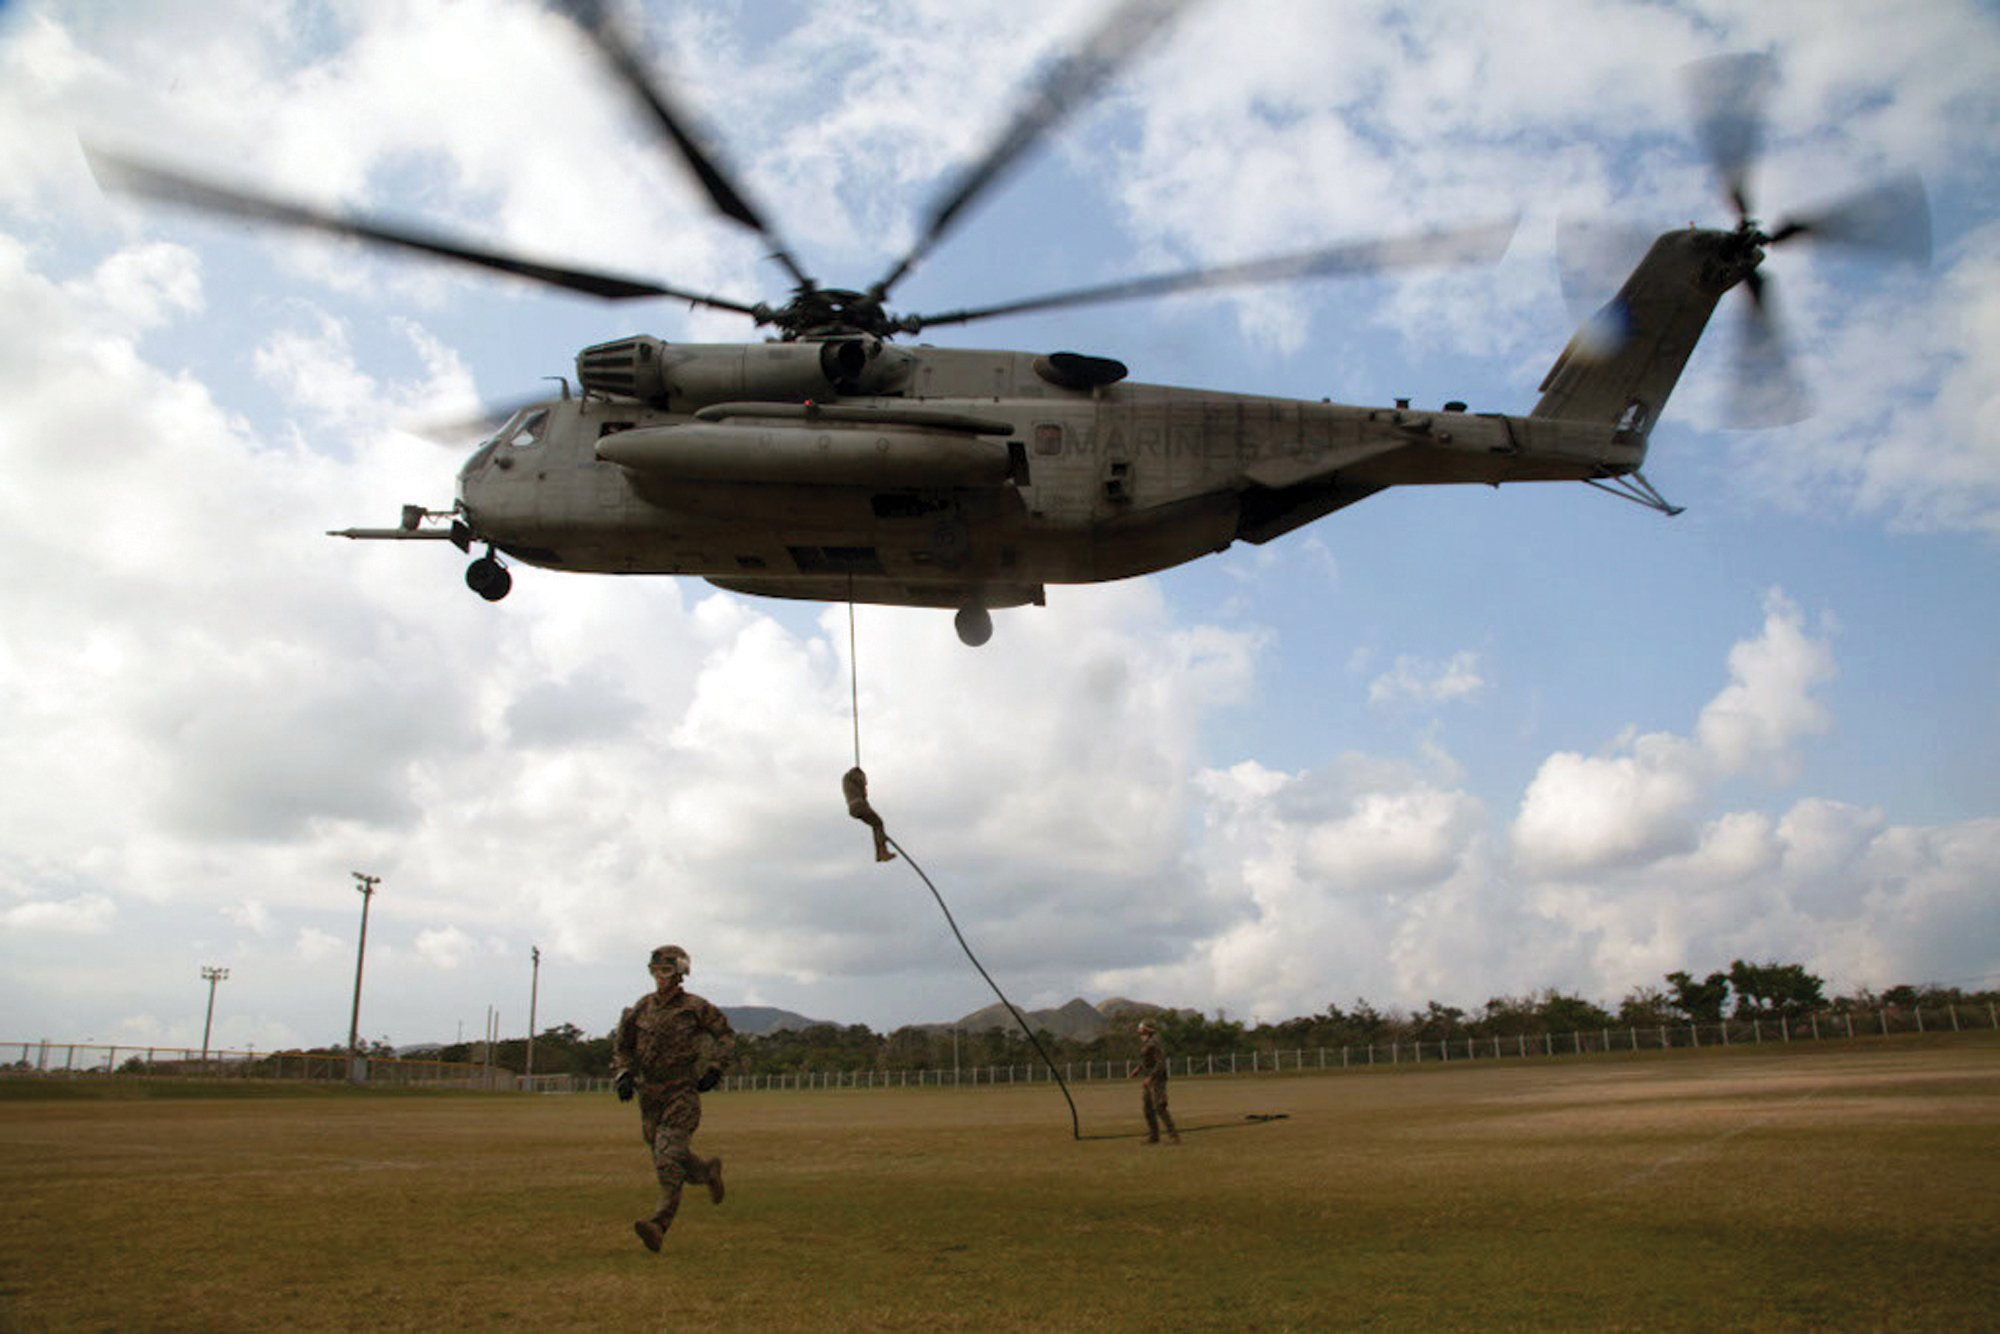 Marines with the 31st MEU fast rope from a CH-53, similar to training conducted at Camp Lejeune before Wednesday's hard landing. US Marine Corps Photo